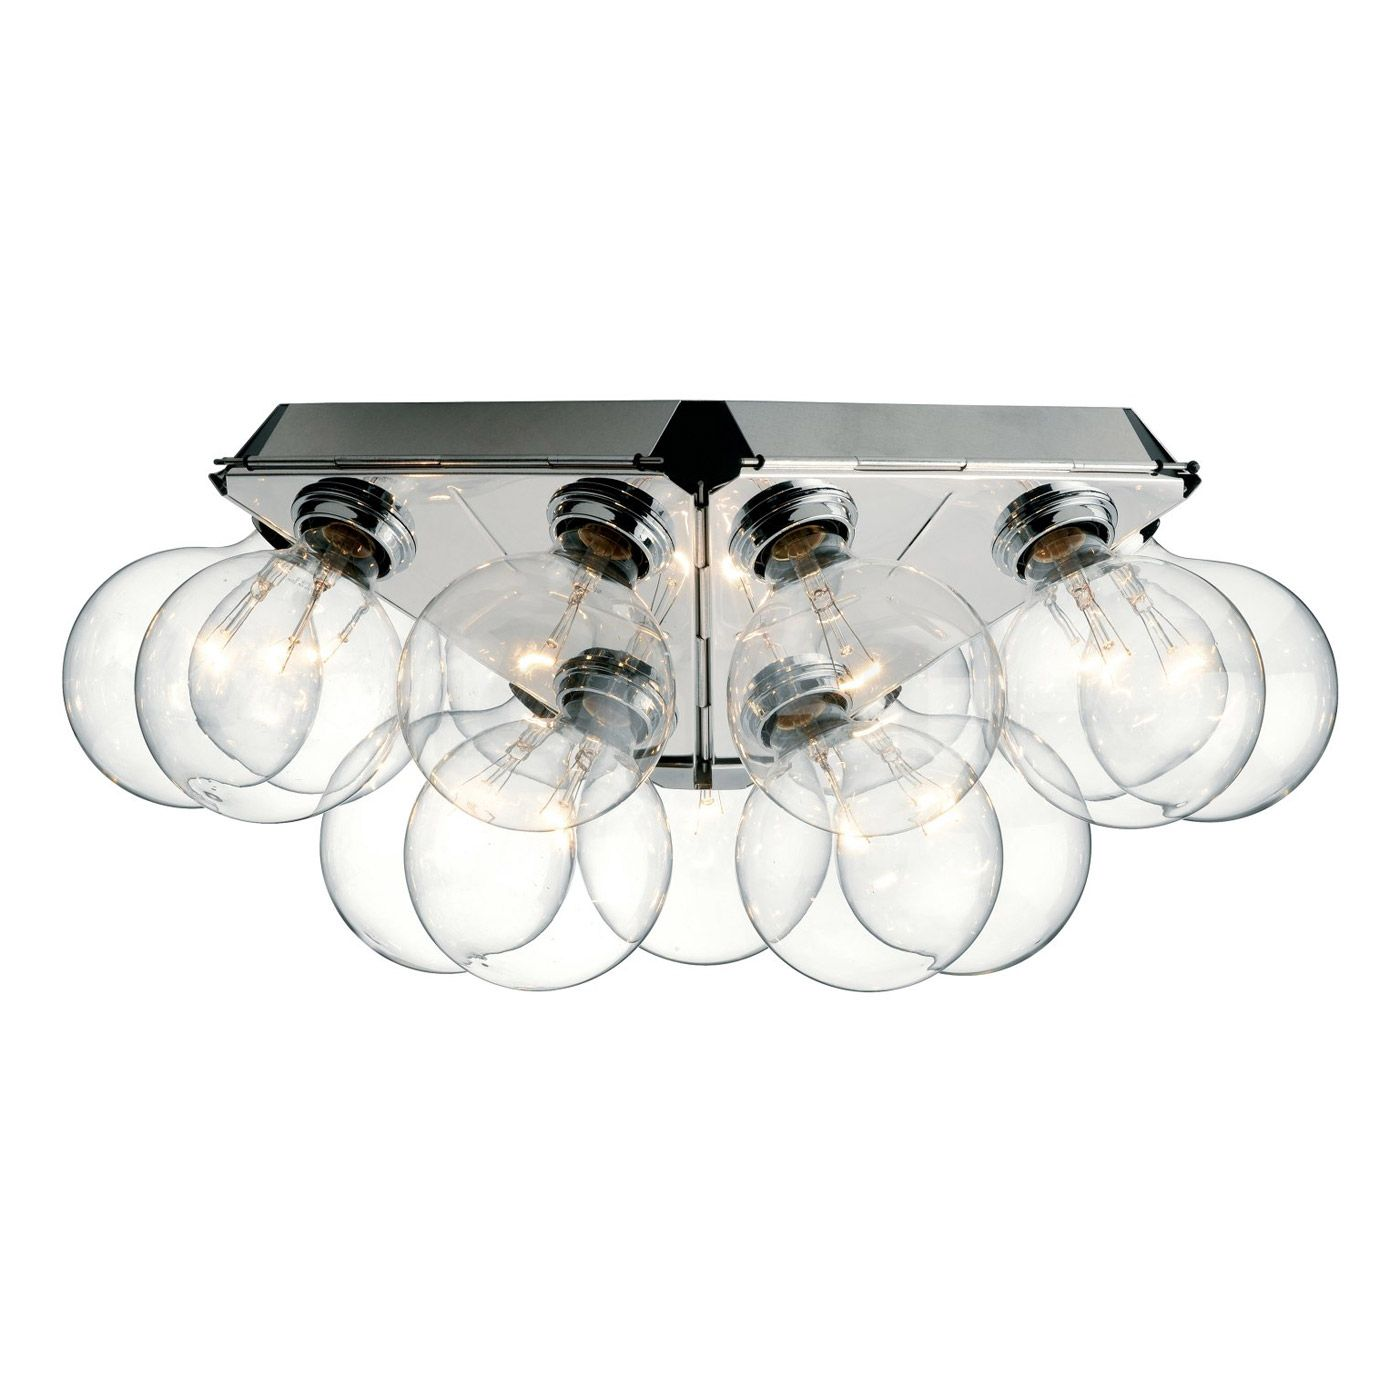 Flos Taraxacum 88 C/W Wall lights buy at light11.eu